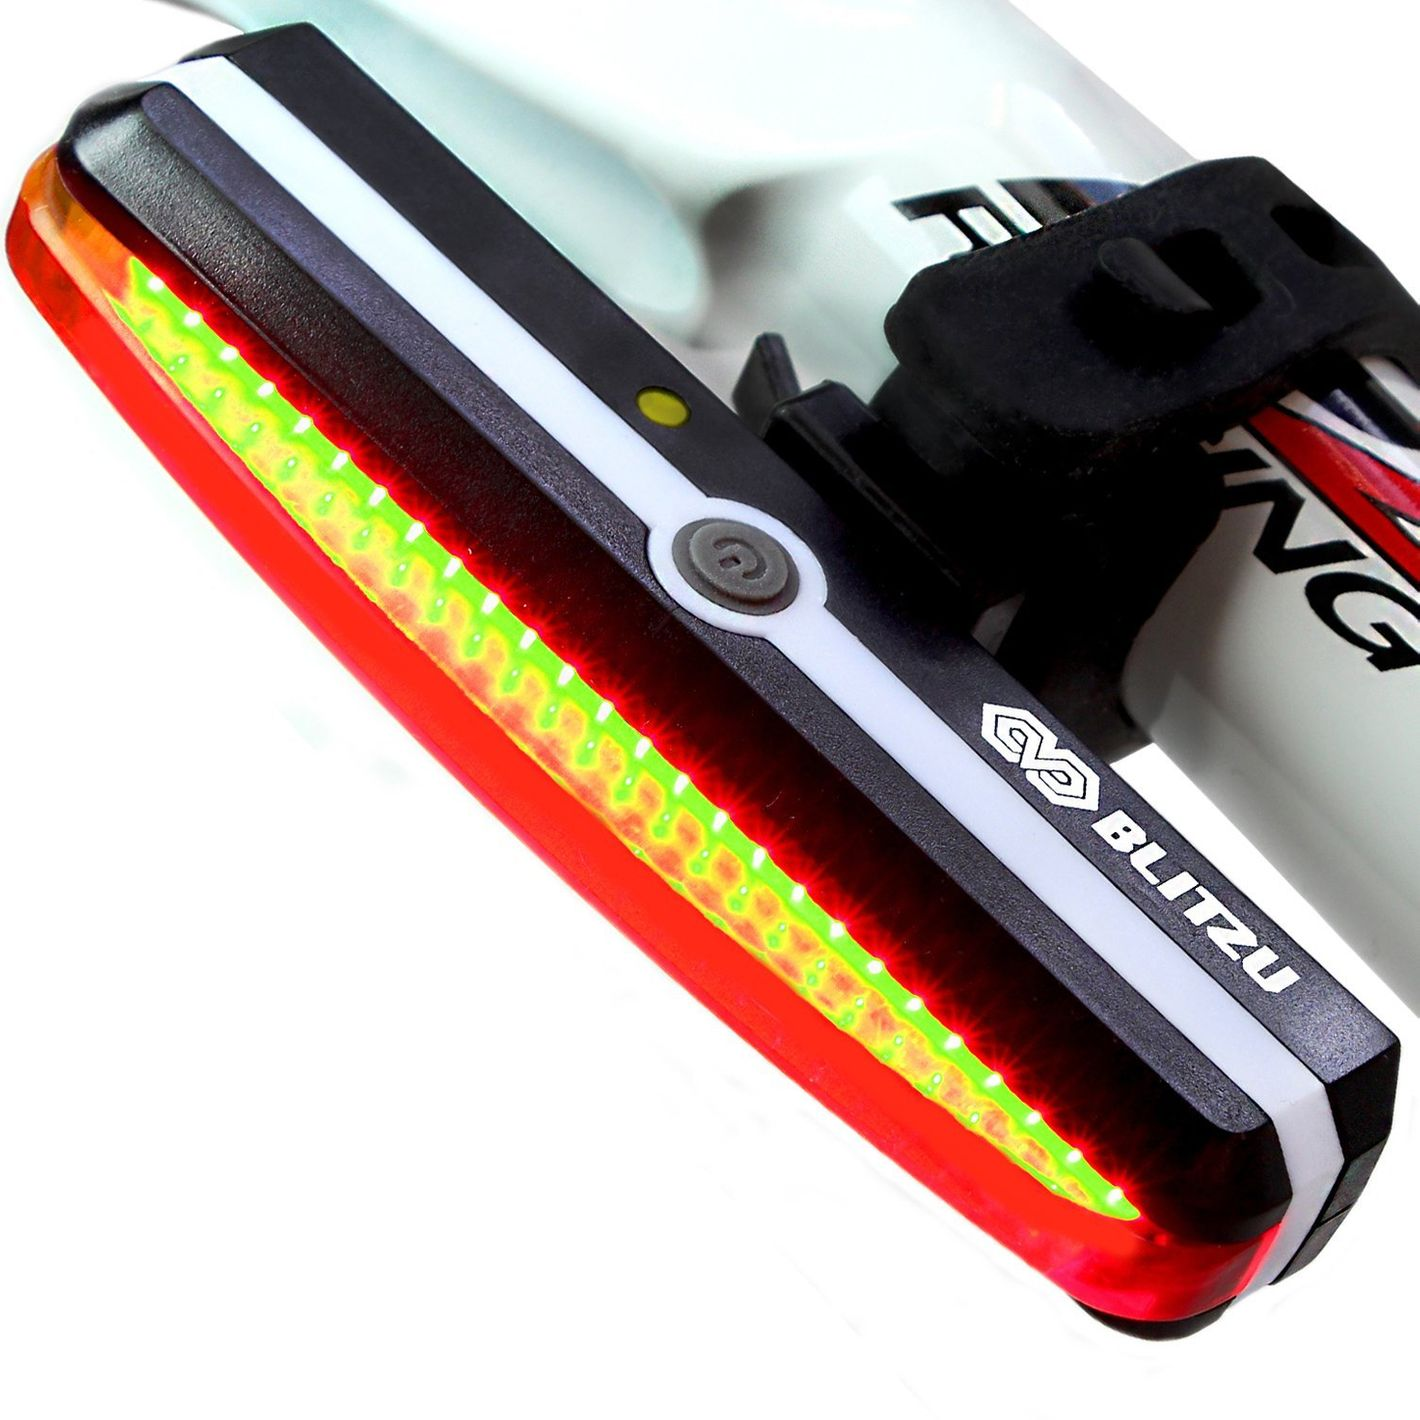 BLITZU Cyborg 168T USB Rechargeable LED Bike Tail Light